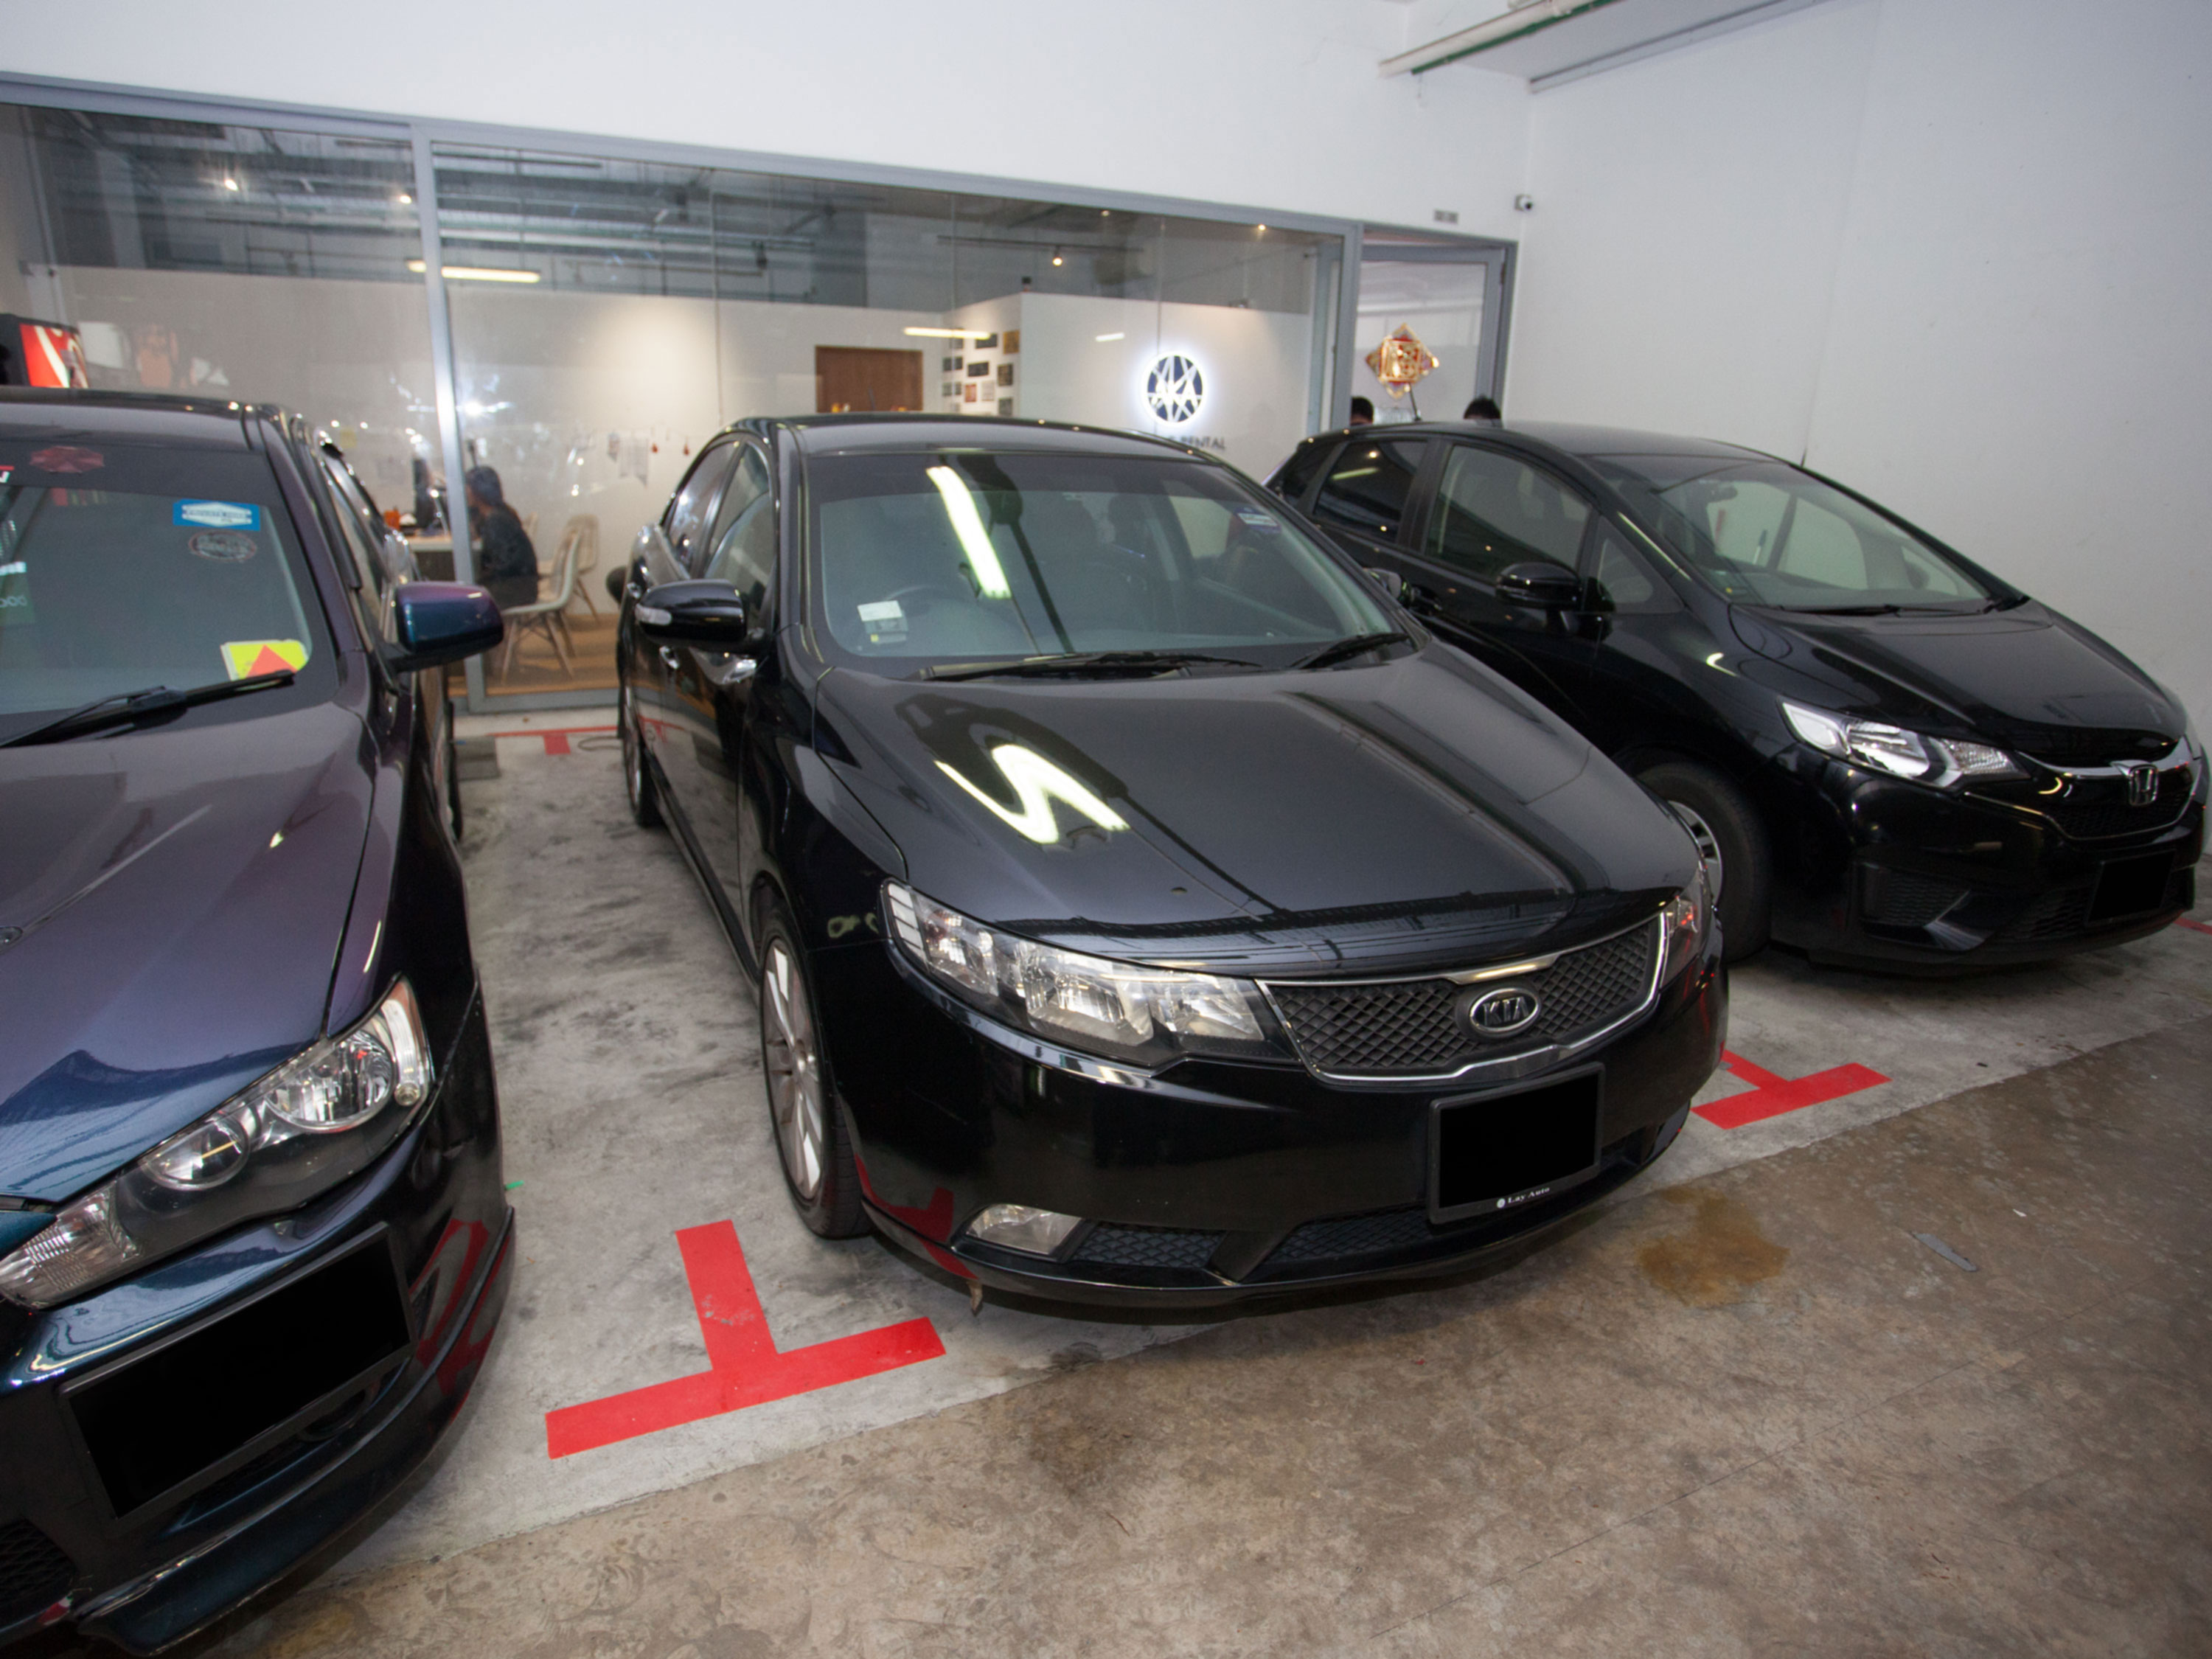 KIA Cerato Forte 1.6A SX [Black] (For Rent)